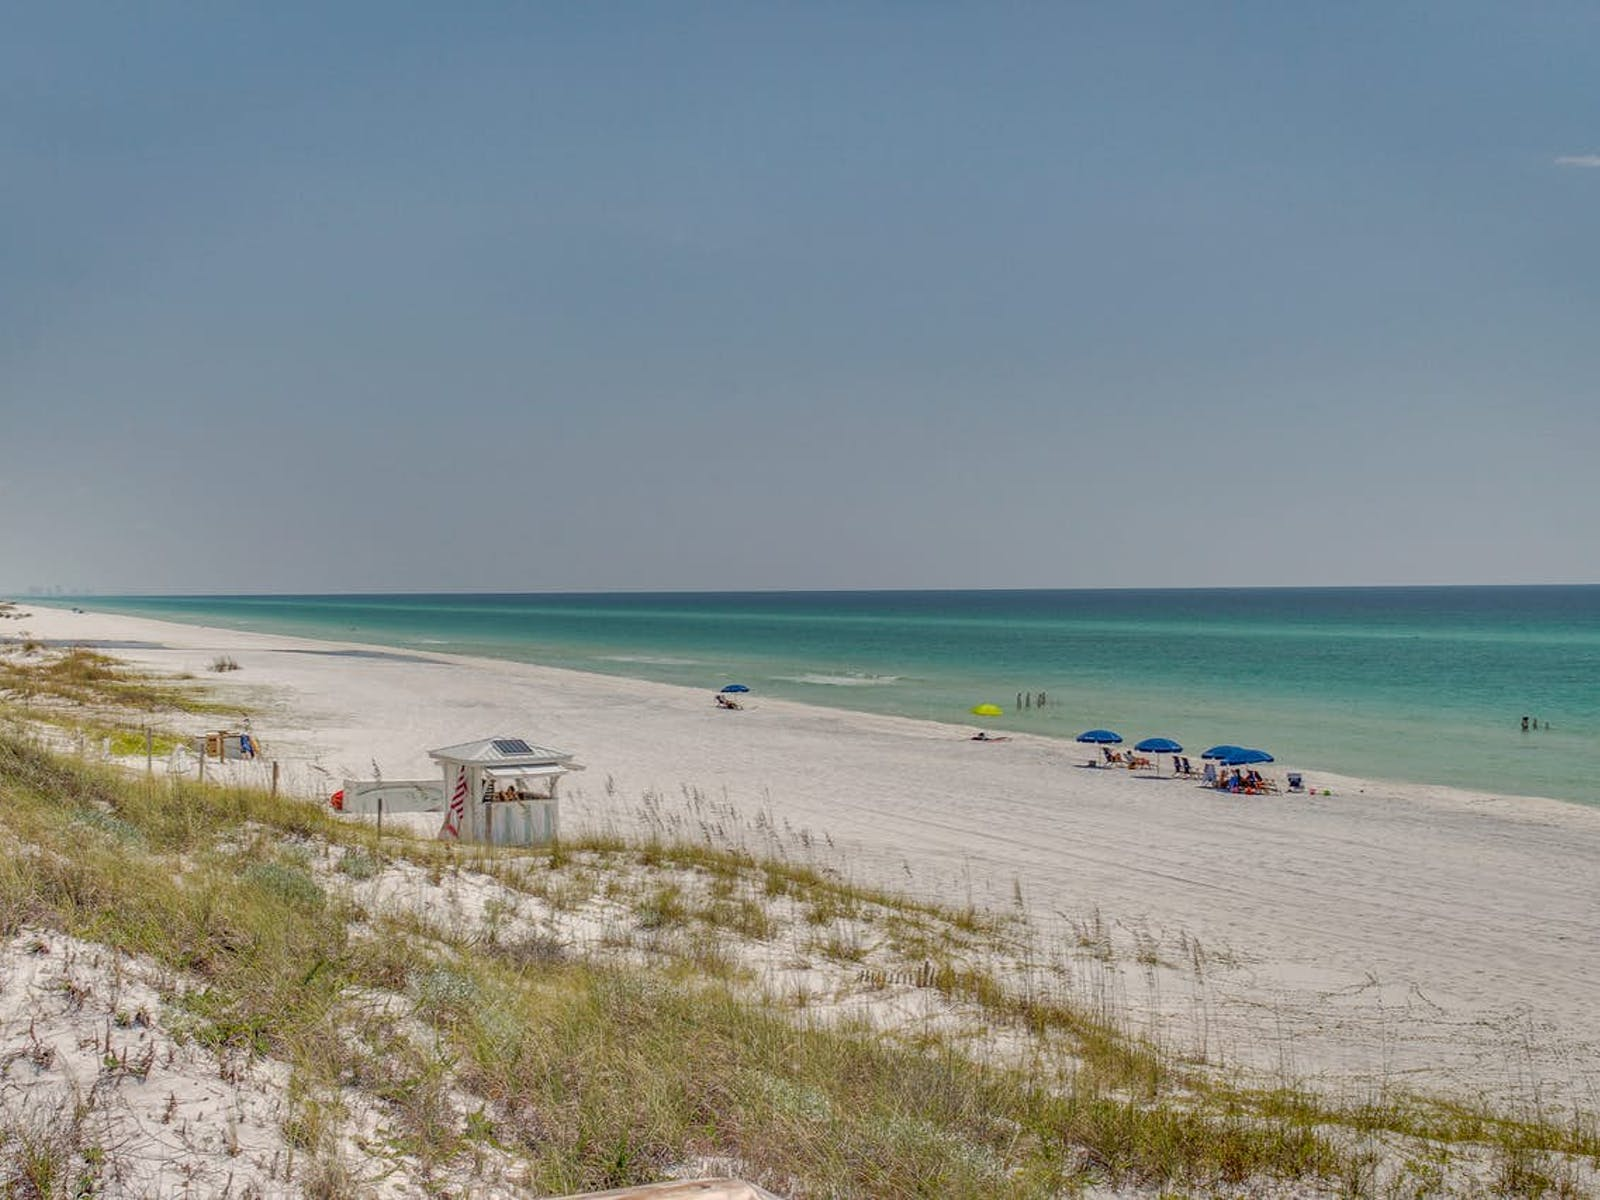 Beach located along the 30a highway in Florida